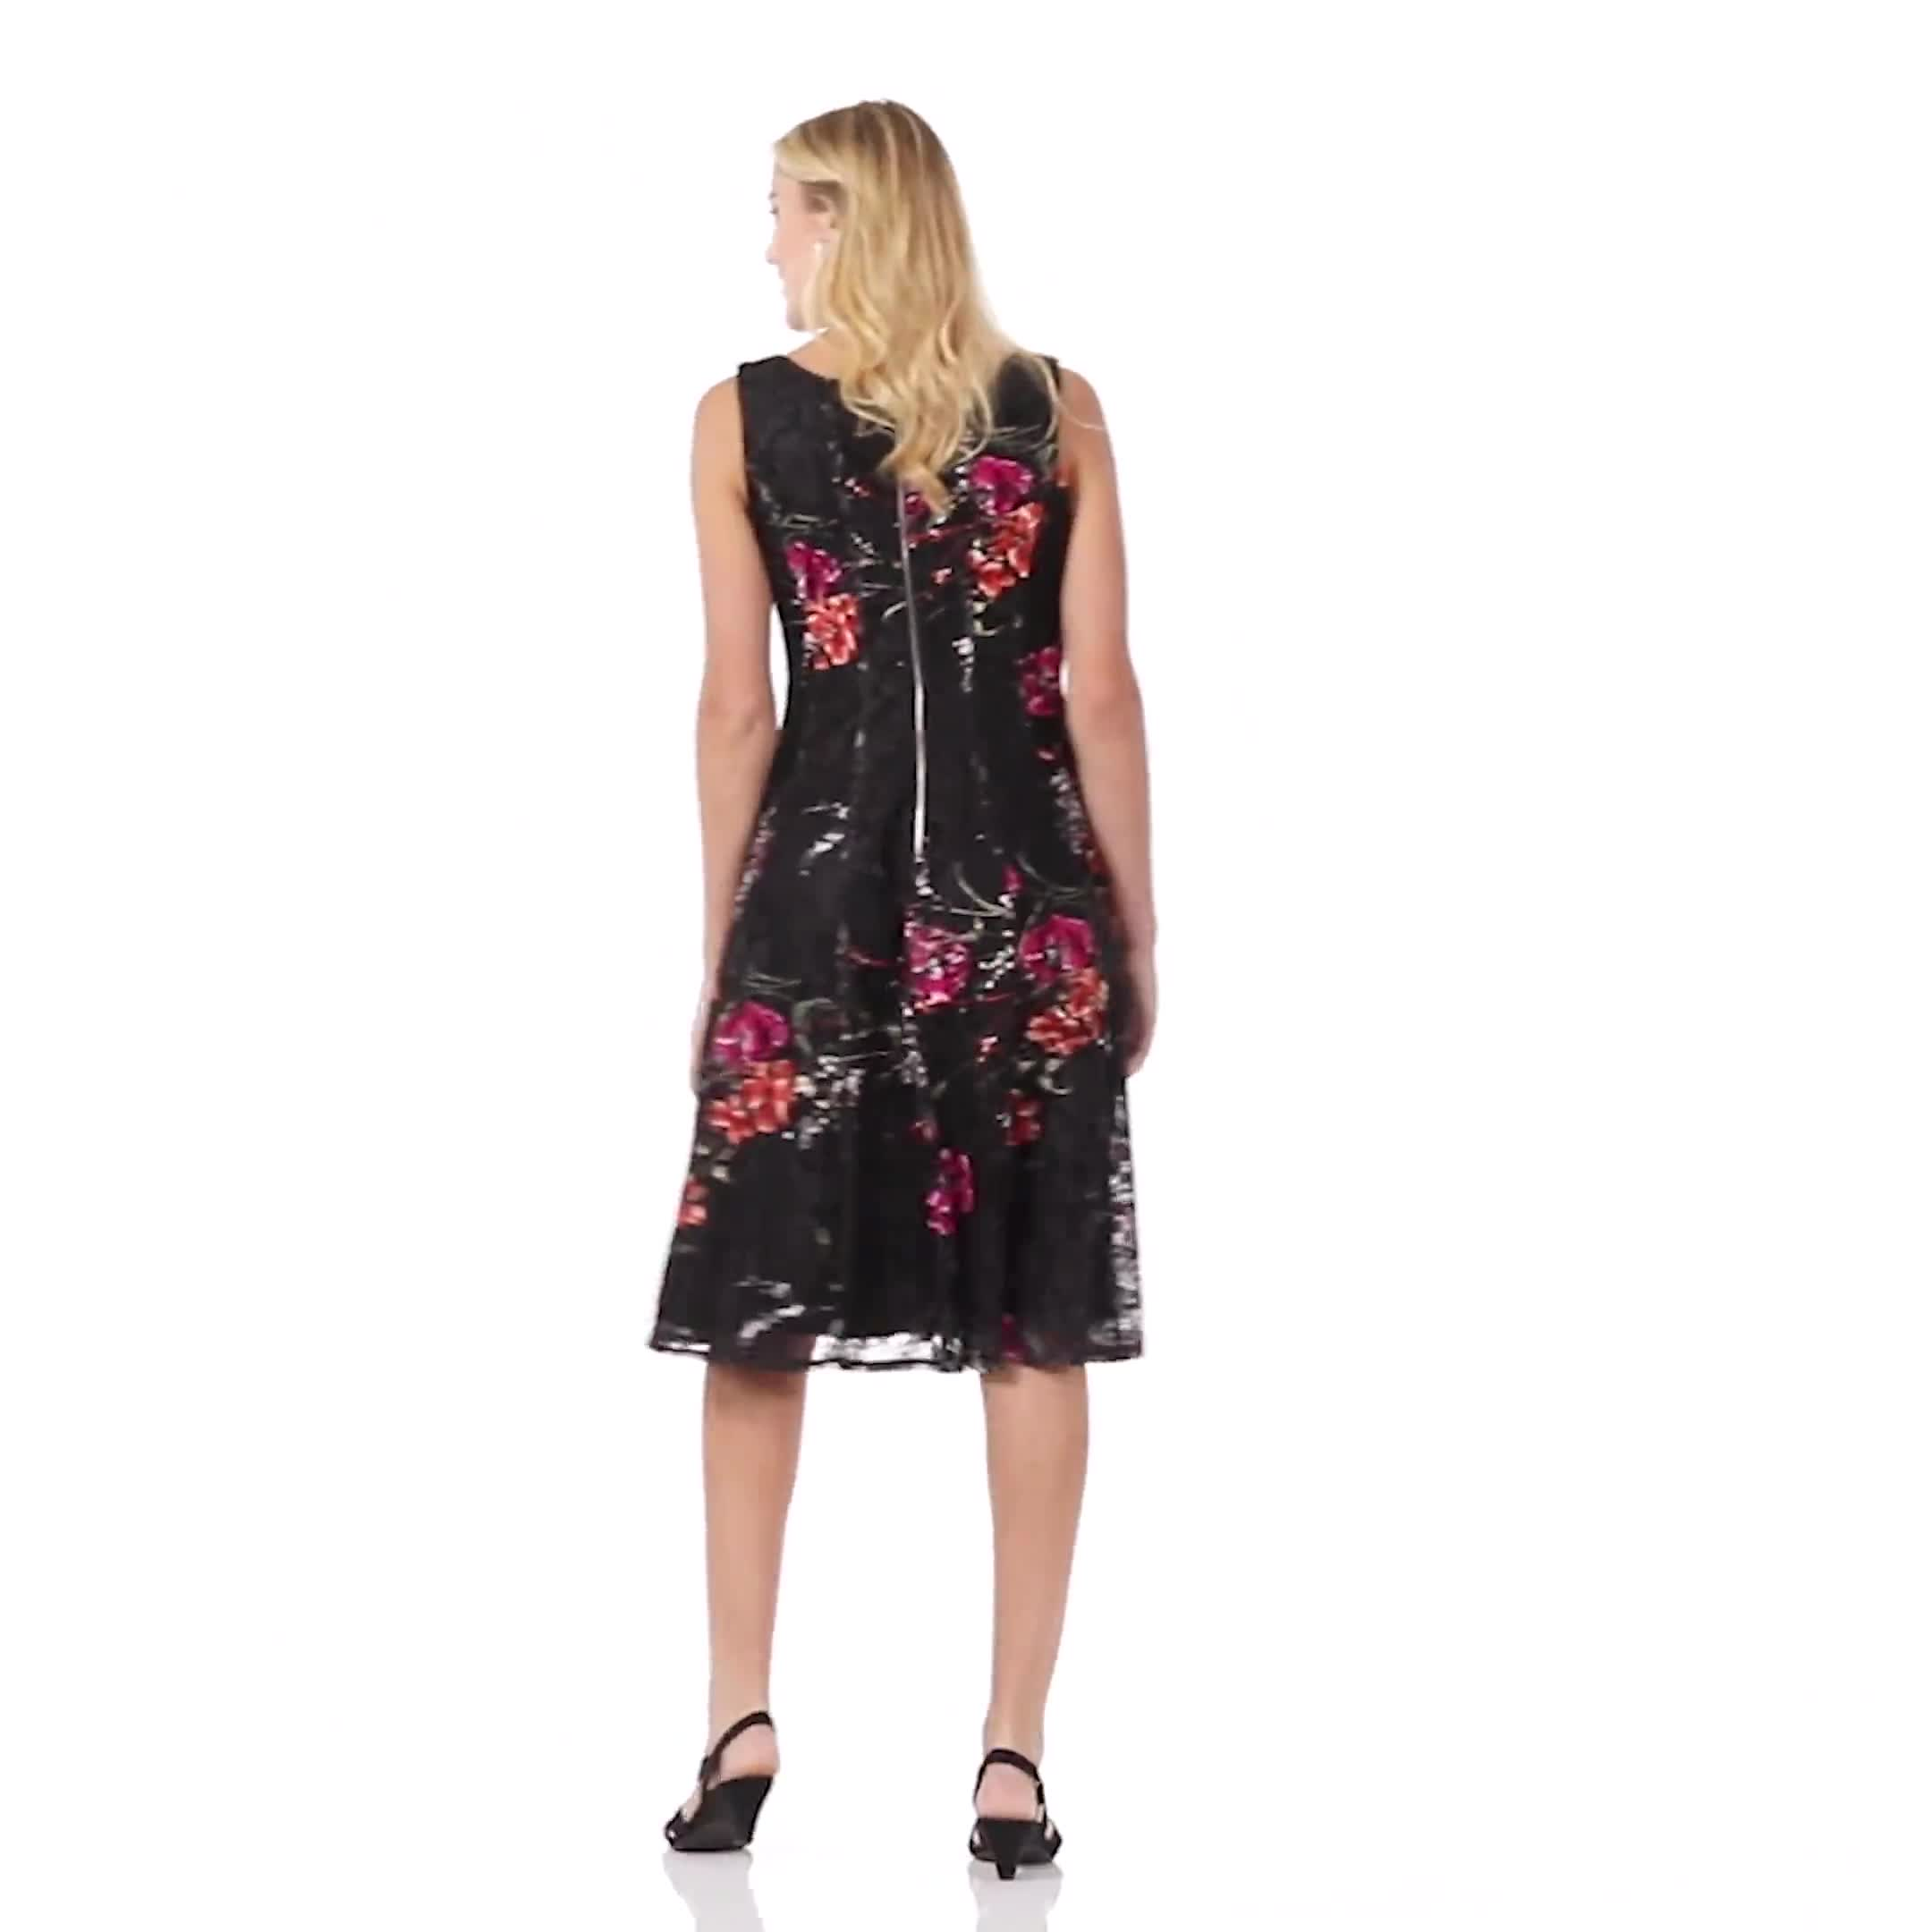 Floral Lace Fit and Flare Dress - Video